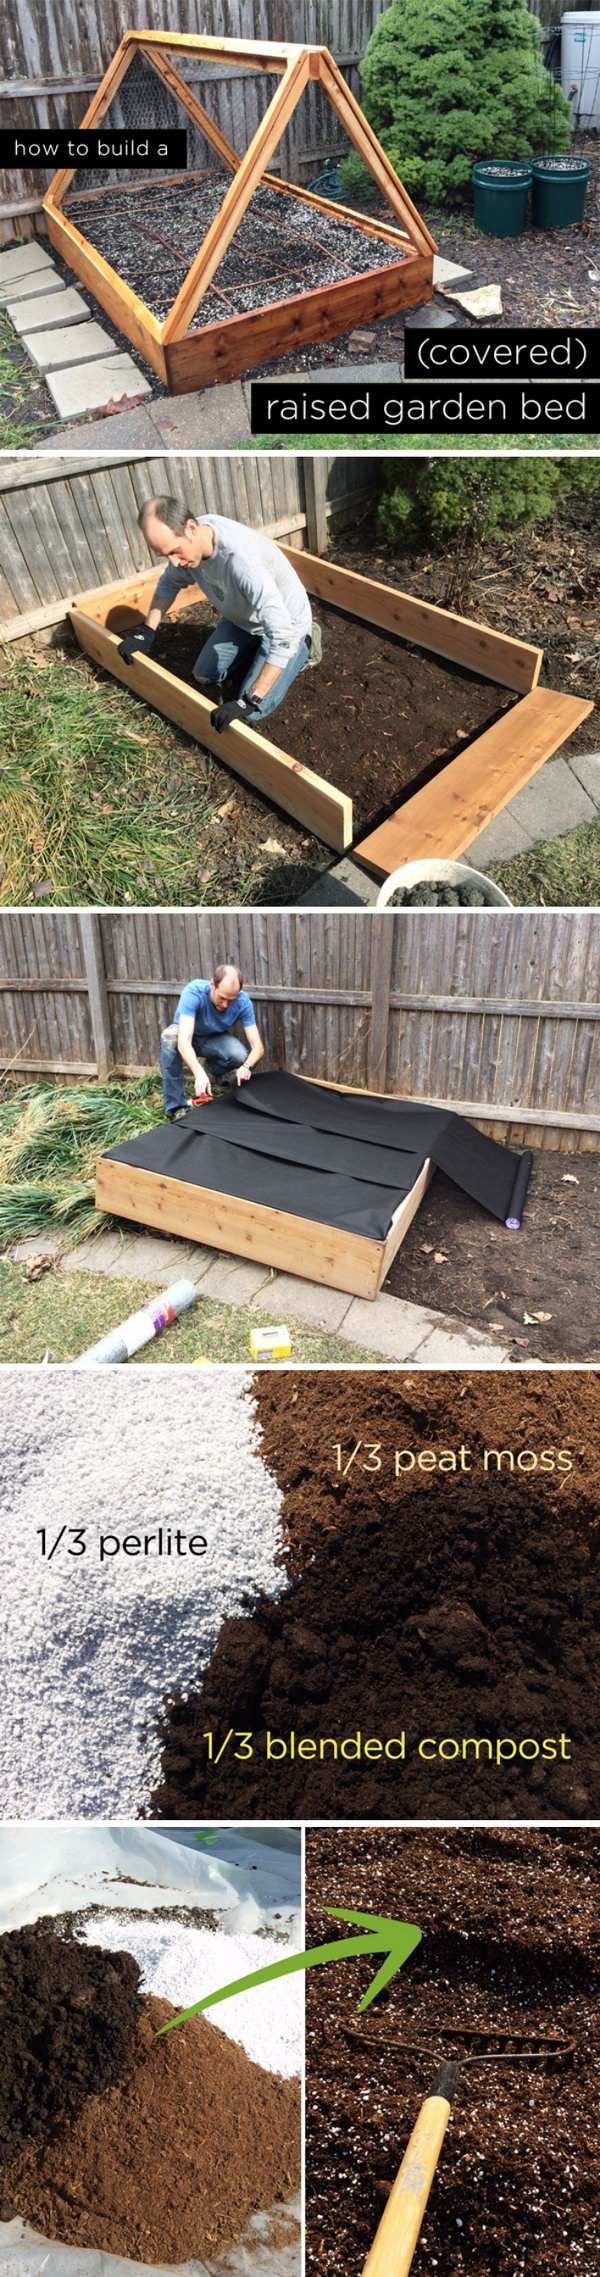 Raised Gardens Ideas 42 free diy raised garden bed plans ideas you can build in a day Diy Covered Raised Garden Bed